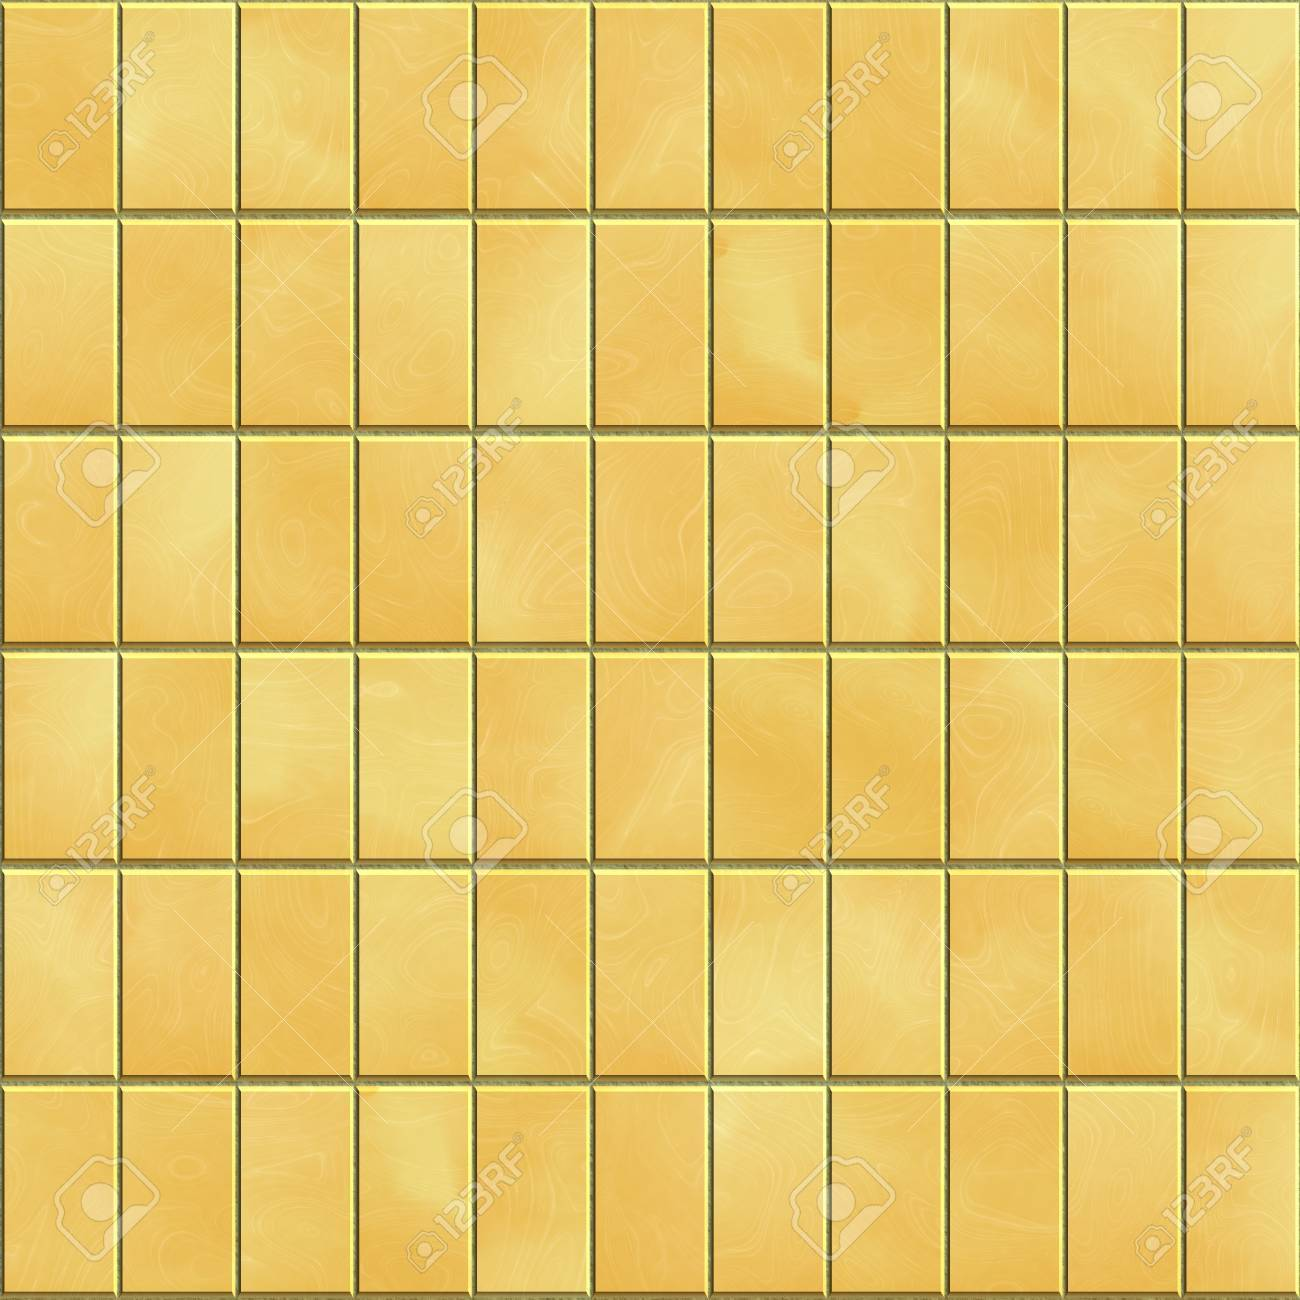 Ceramic tiles seamless texture stock photo picture and royalty ceramic tiles seamless texture stock photo 19476476 dailygadgetfo Image collections